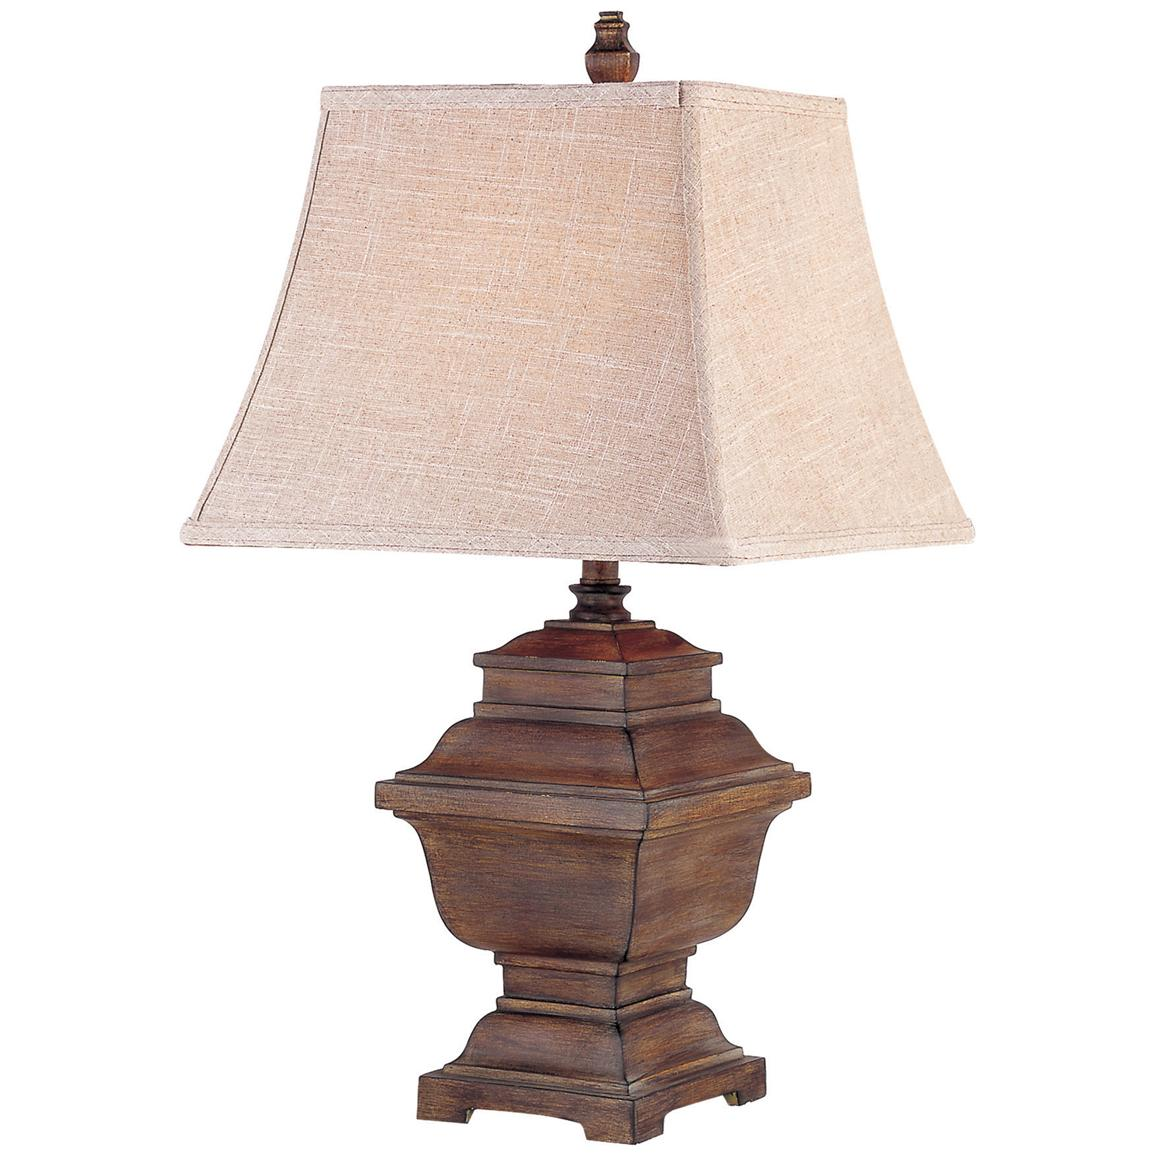 Trans Globe Lighting® Moroccan Vessel Table Lamp